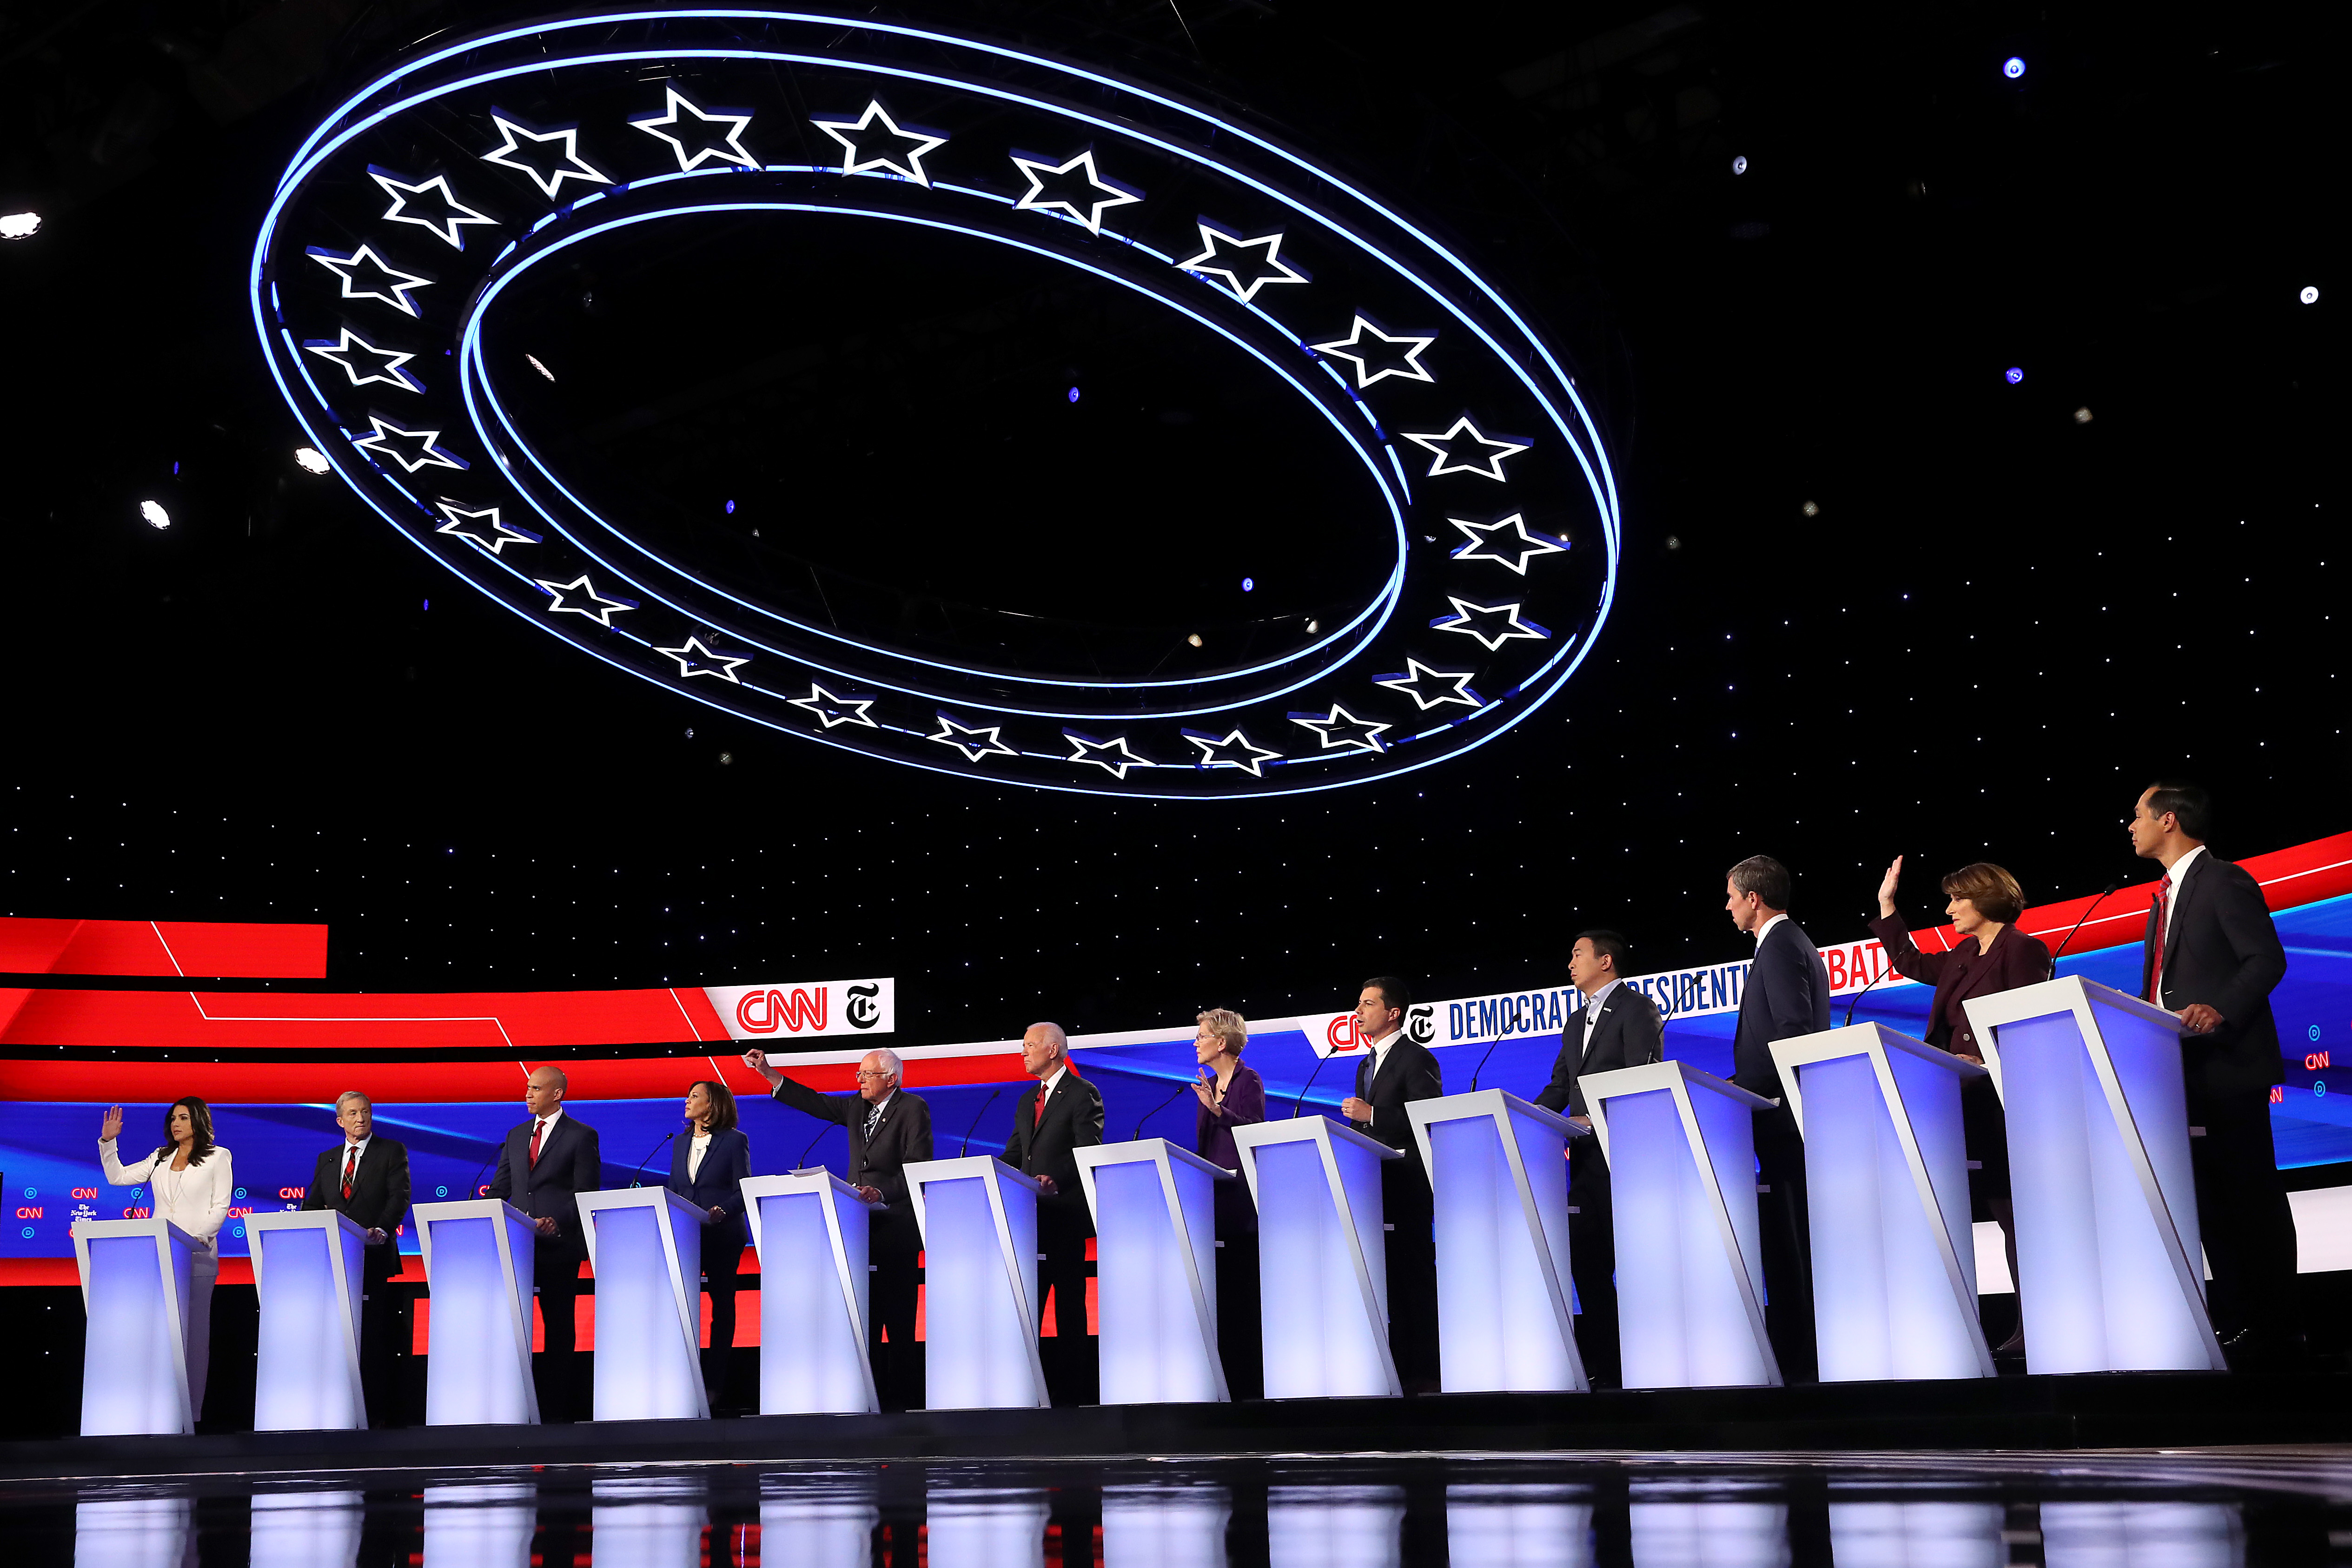 WESTERVILLE, OHIO - OCTOBER 15: Democratic presidential candidates (L-R) Rep. Tulsi Gabbard (D-HI), billionaire Tom Steyer, Sen. Cory Booker (D-NJ), Sen. Kamala Harris (D-CA), Sen. Bernie Sanders (I-VT), former Vice President Joe Biden, Sen. Elizabeth Warren (D-MA), South Bend, Indiana Mayor Pete Buttigieg, former tech executive Andrew Yang, former Texas congressman Beto O'Rourke, Sen. Amy Klobuchar (D-MN), and former housing secretary Julian Castro on stage during the Democratic Presidential Debate at Otterbein University on October 15, 2019 in Westerville, Ohio. A record 12 presidential hopefuls are participating in the debate hosted by CNN and The New York Times. (Photo by Win McNamee/Getty Images)